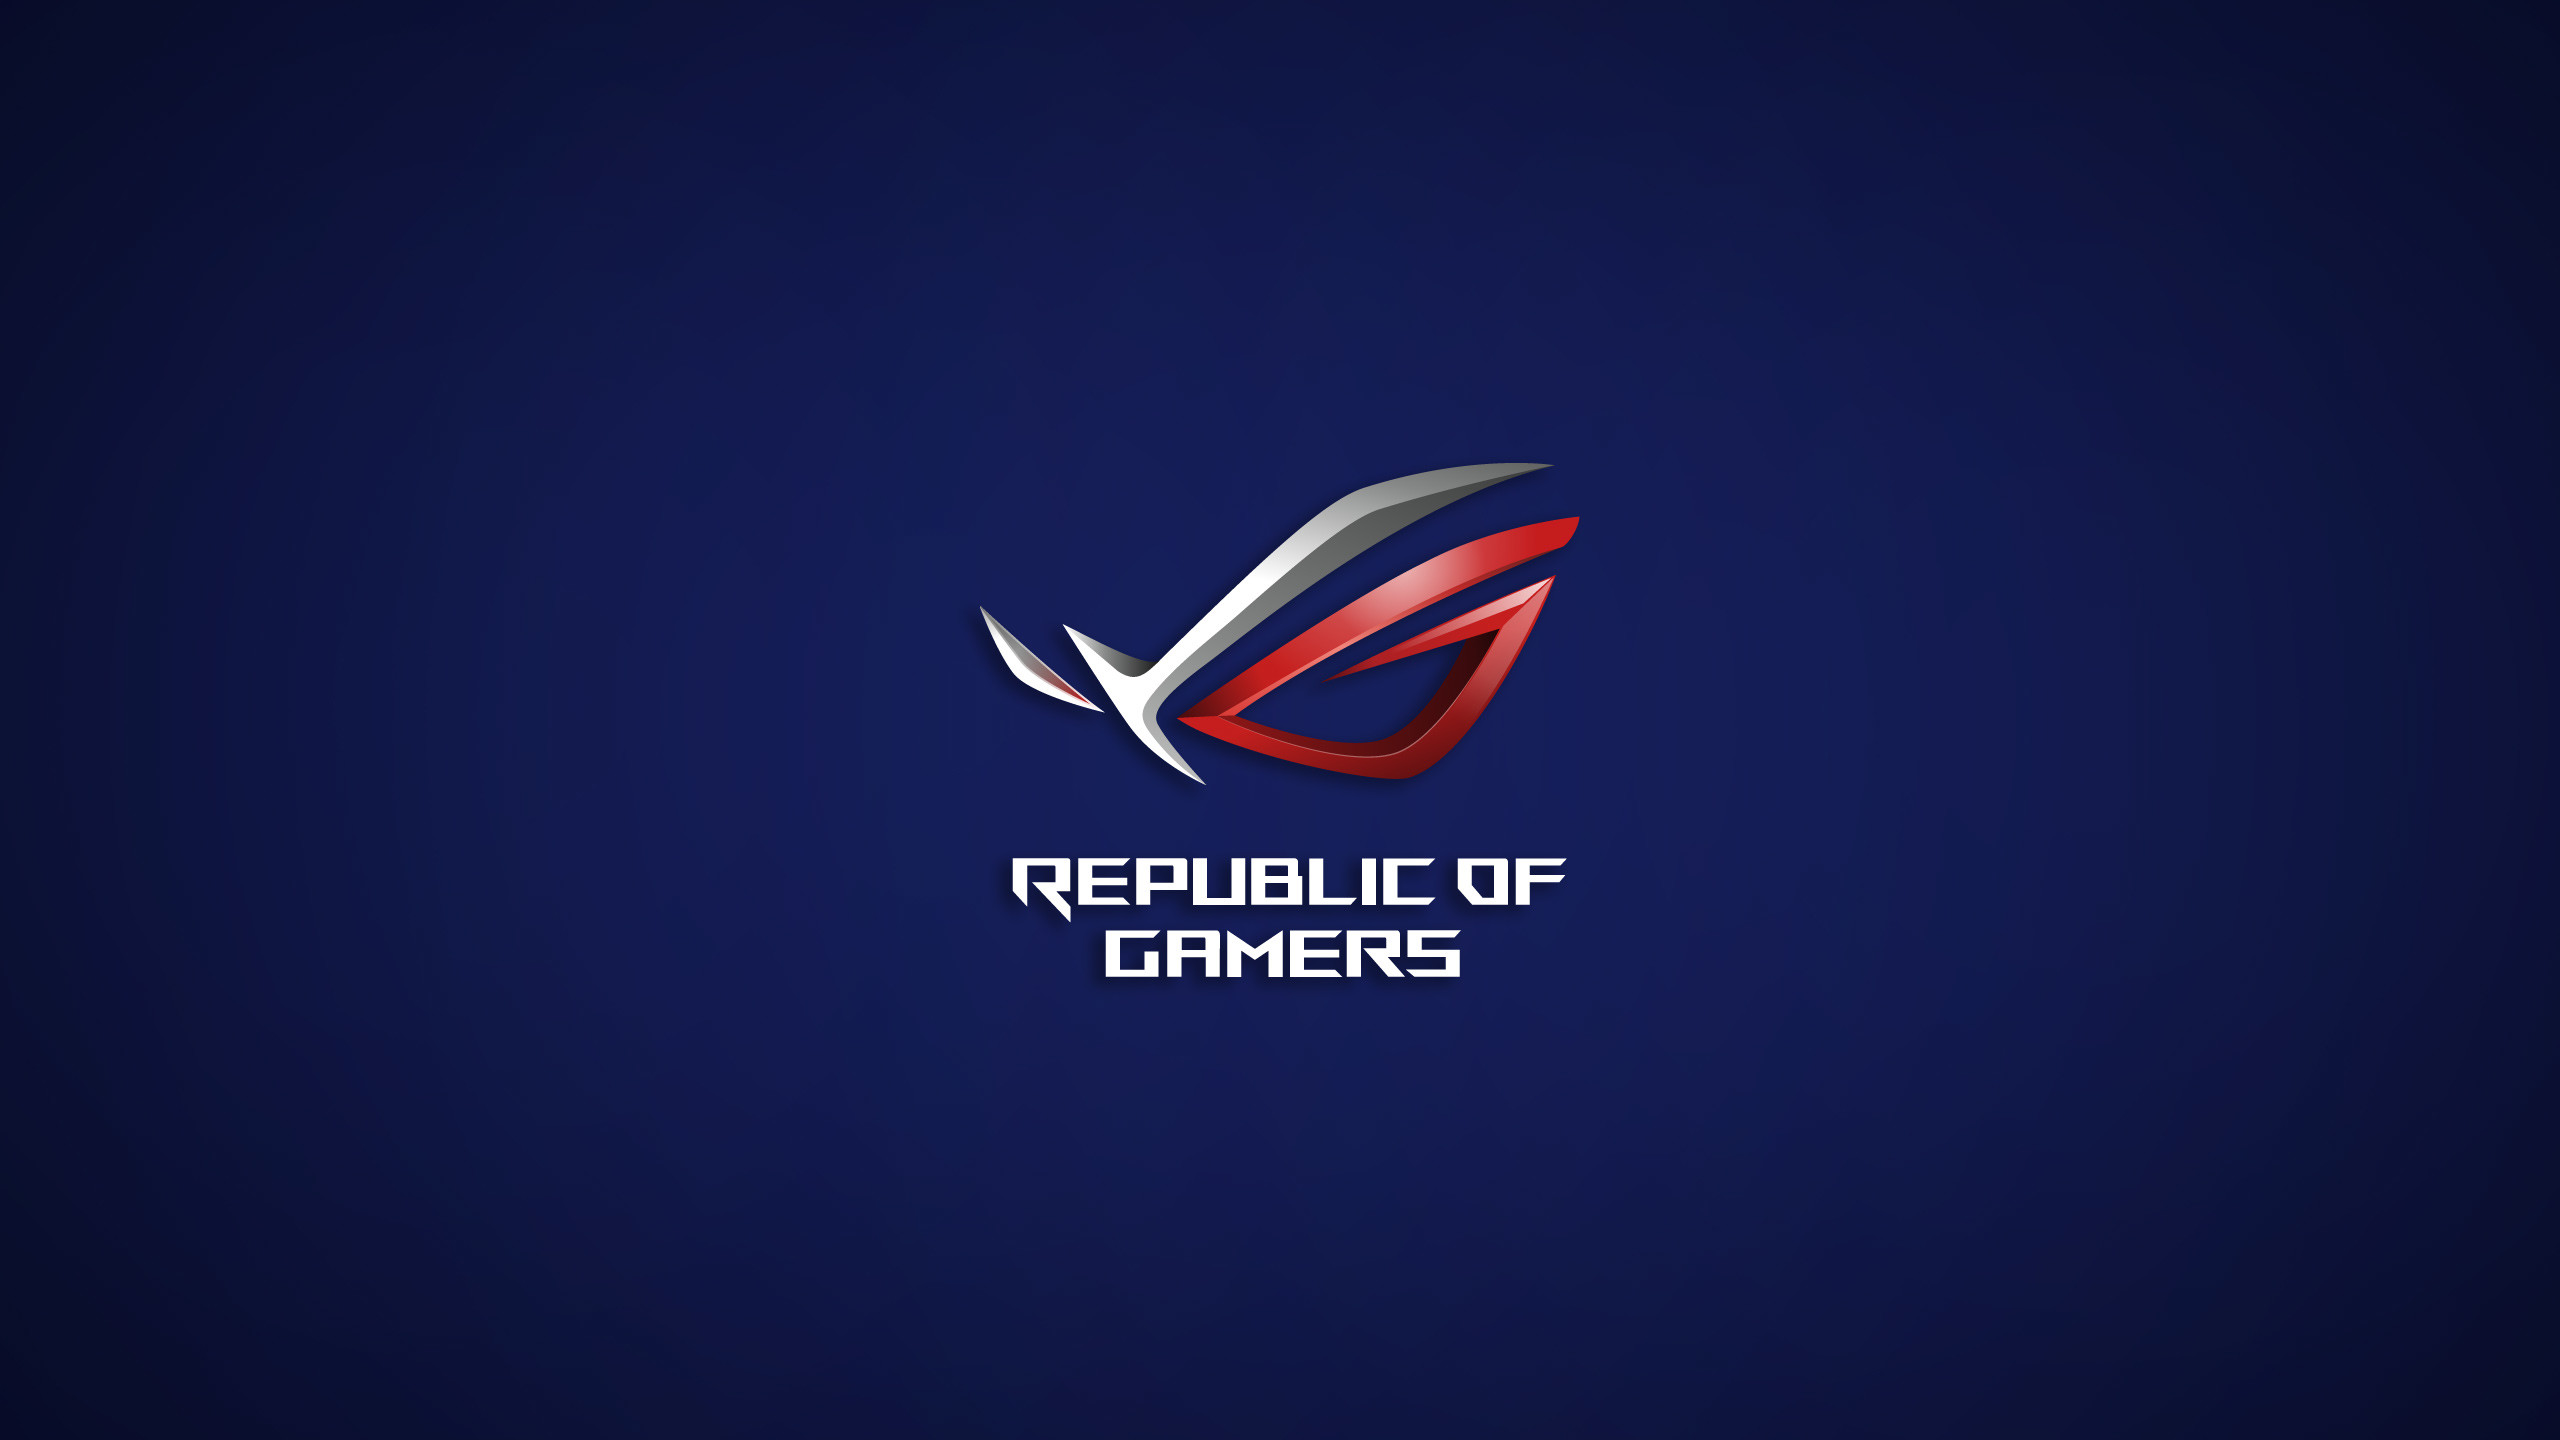 ROG ASUS Republic of Gamers – wallpaper is uploaded on . We hope you like it